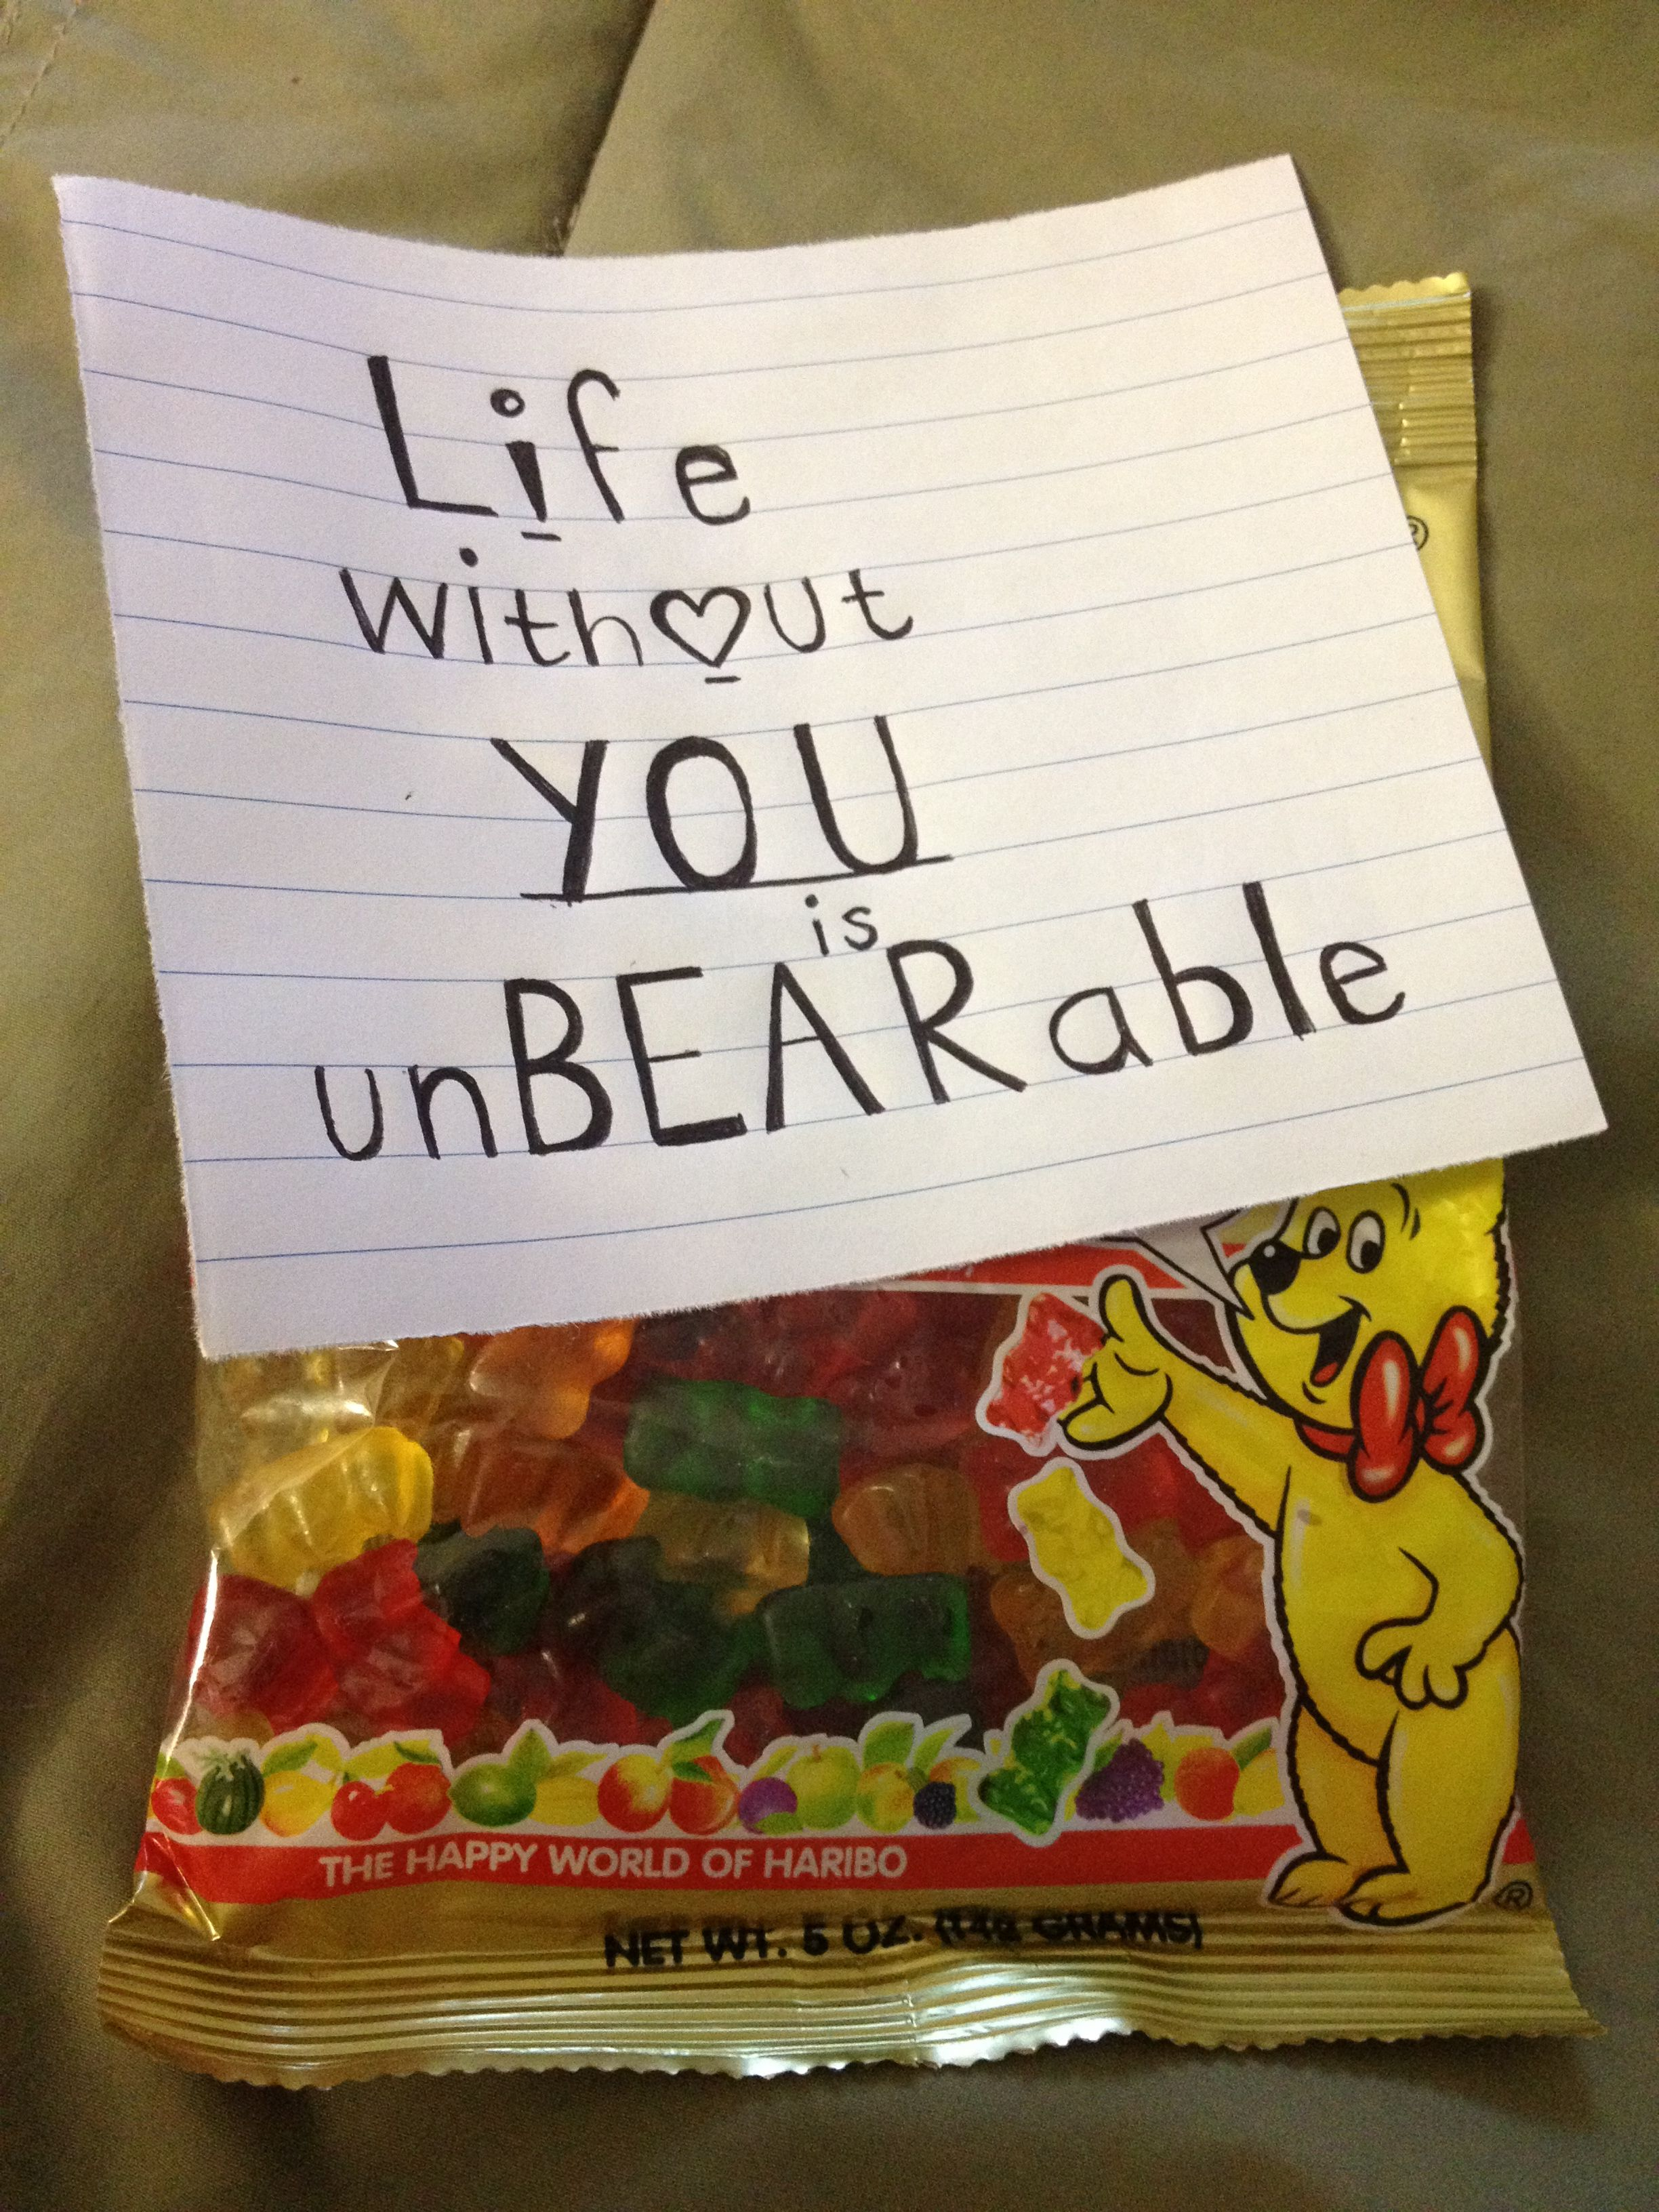 Life Without You Is Unbearable I 3 Love Note For My Boyfriend